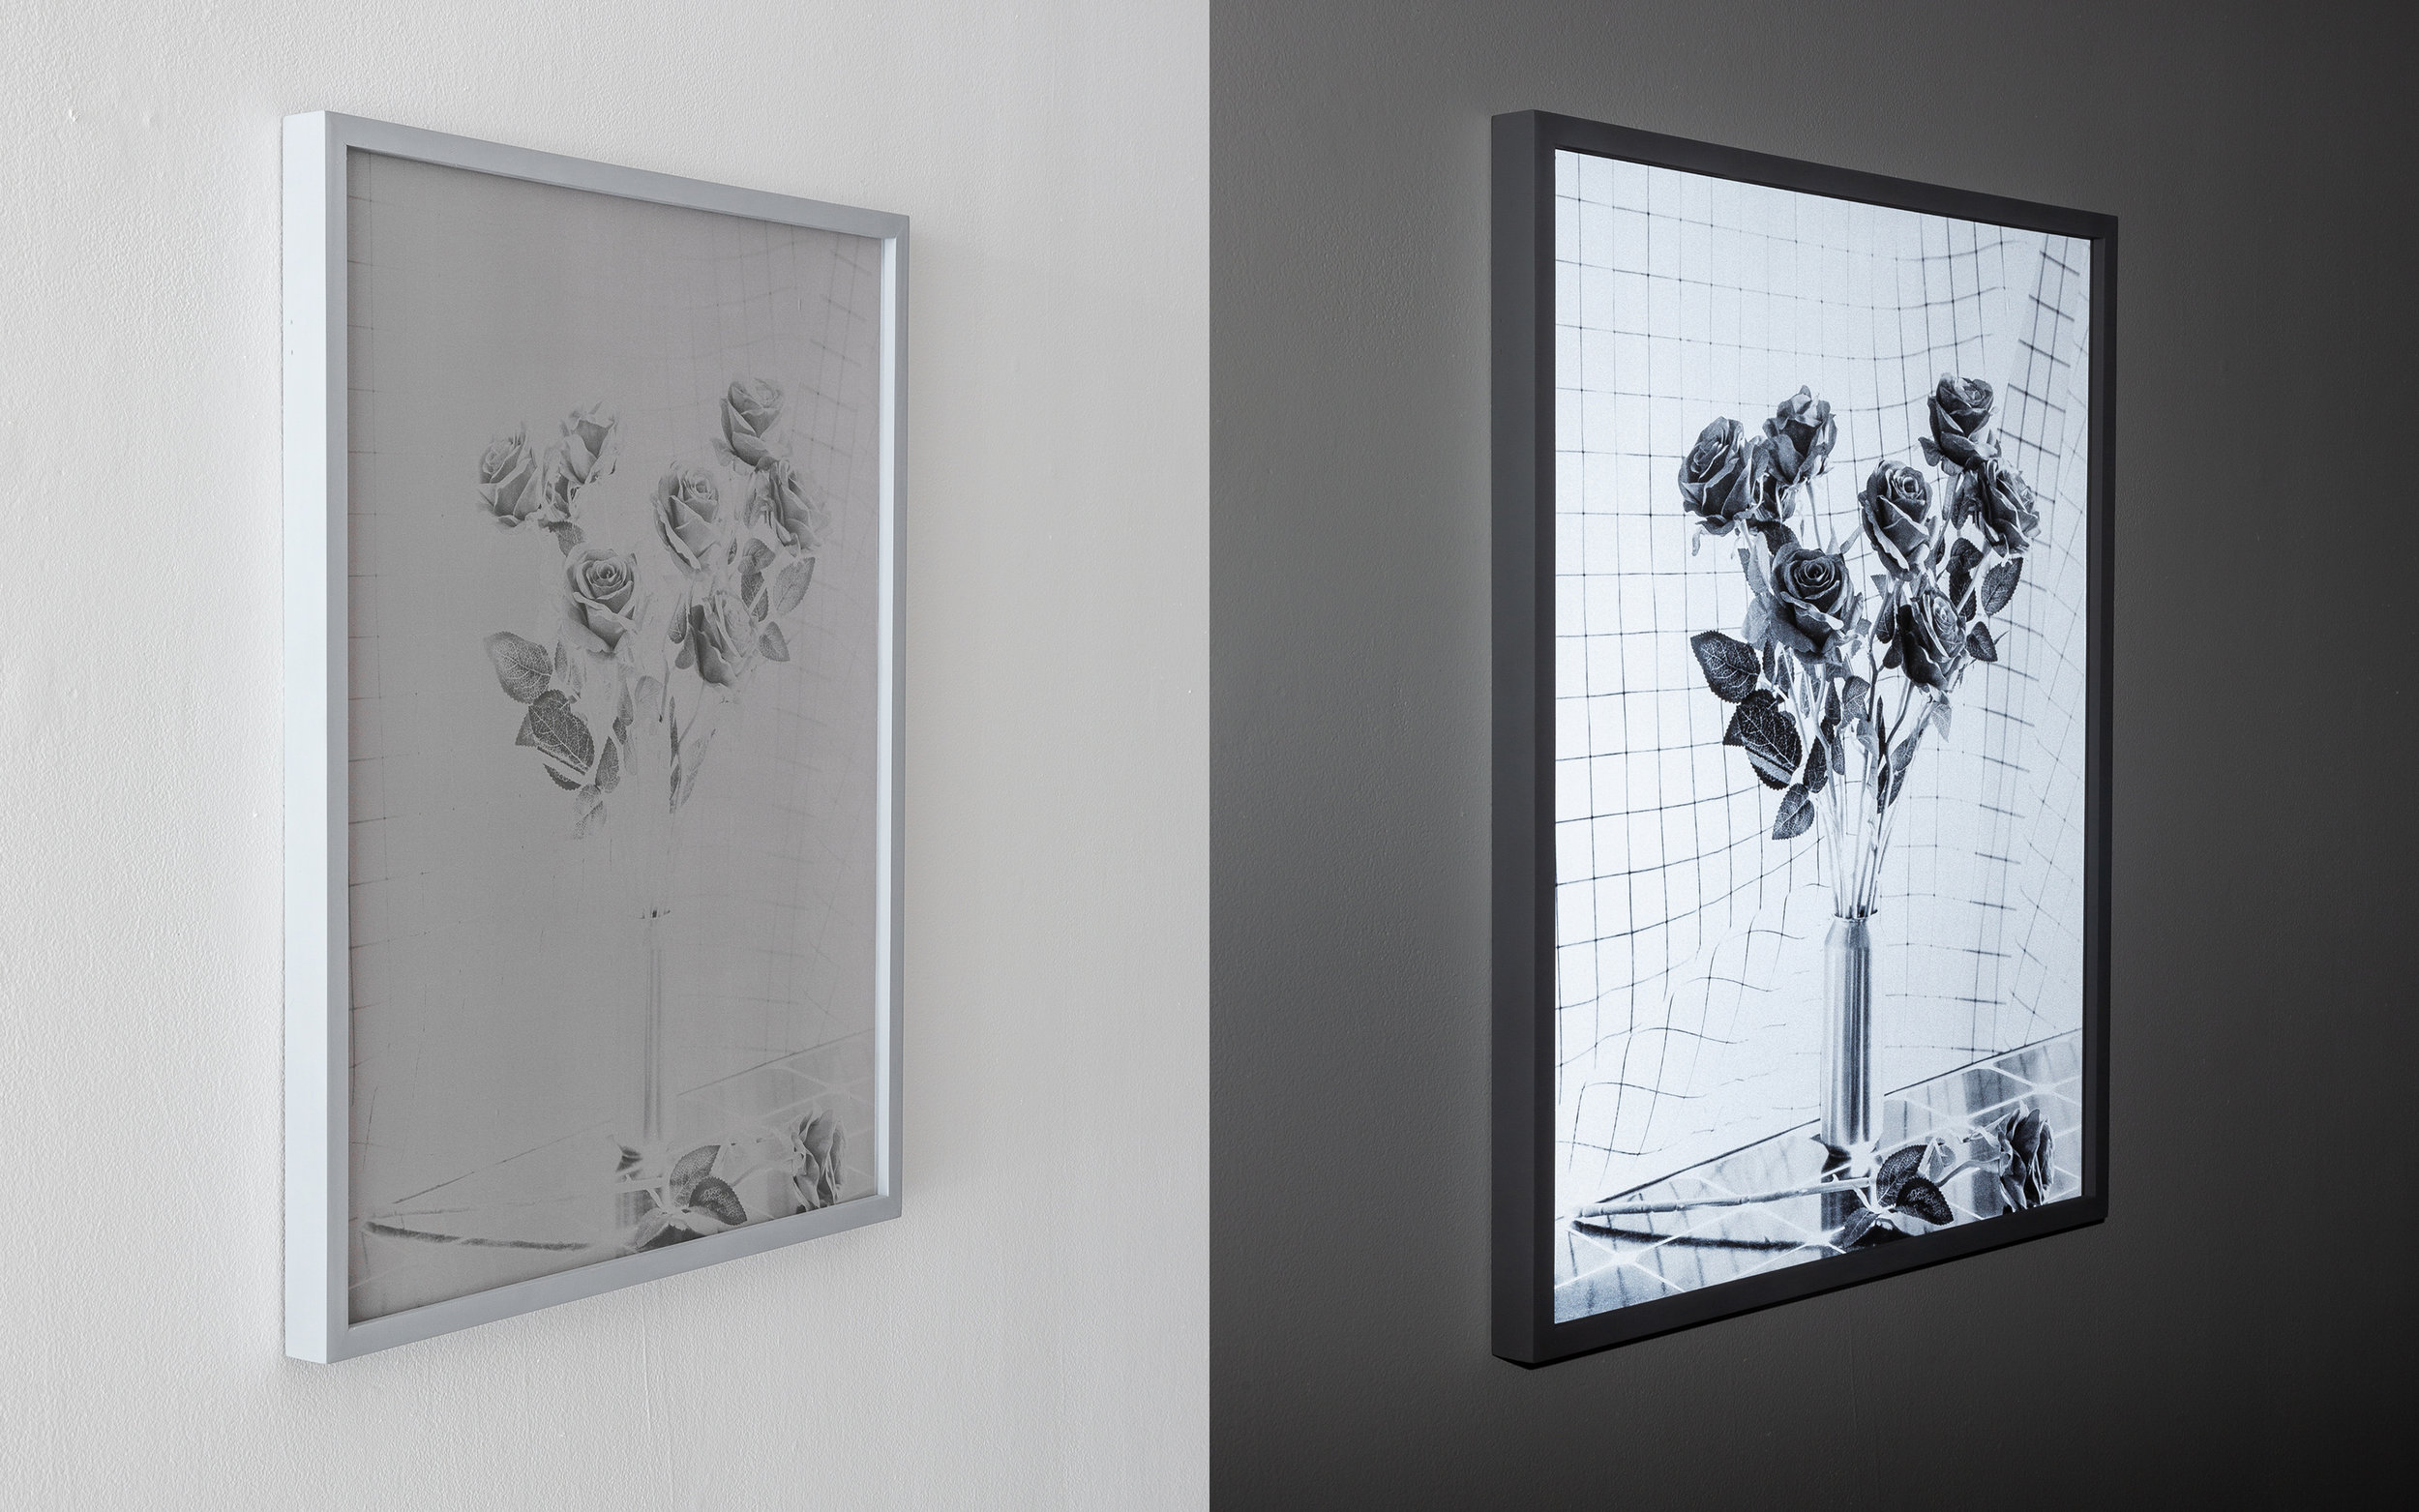 Patrick Harkin_Roses on Grid (Early Warning System)_Ultraviolet Print on Anti-Photographic Fabric_25 x 302019_.jpg